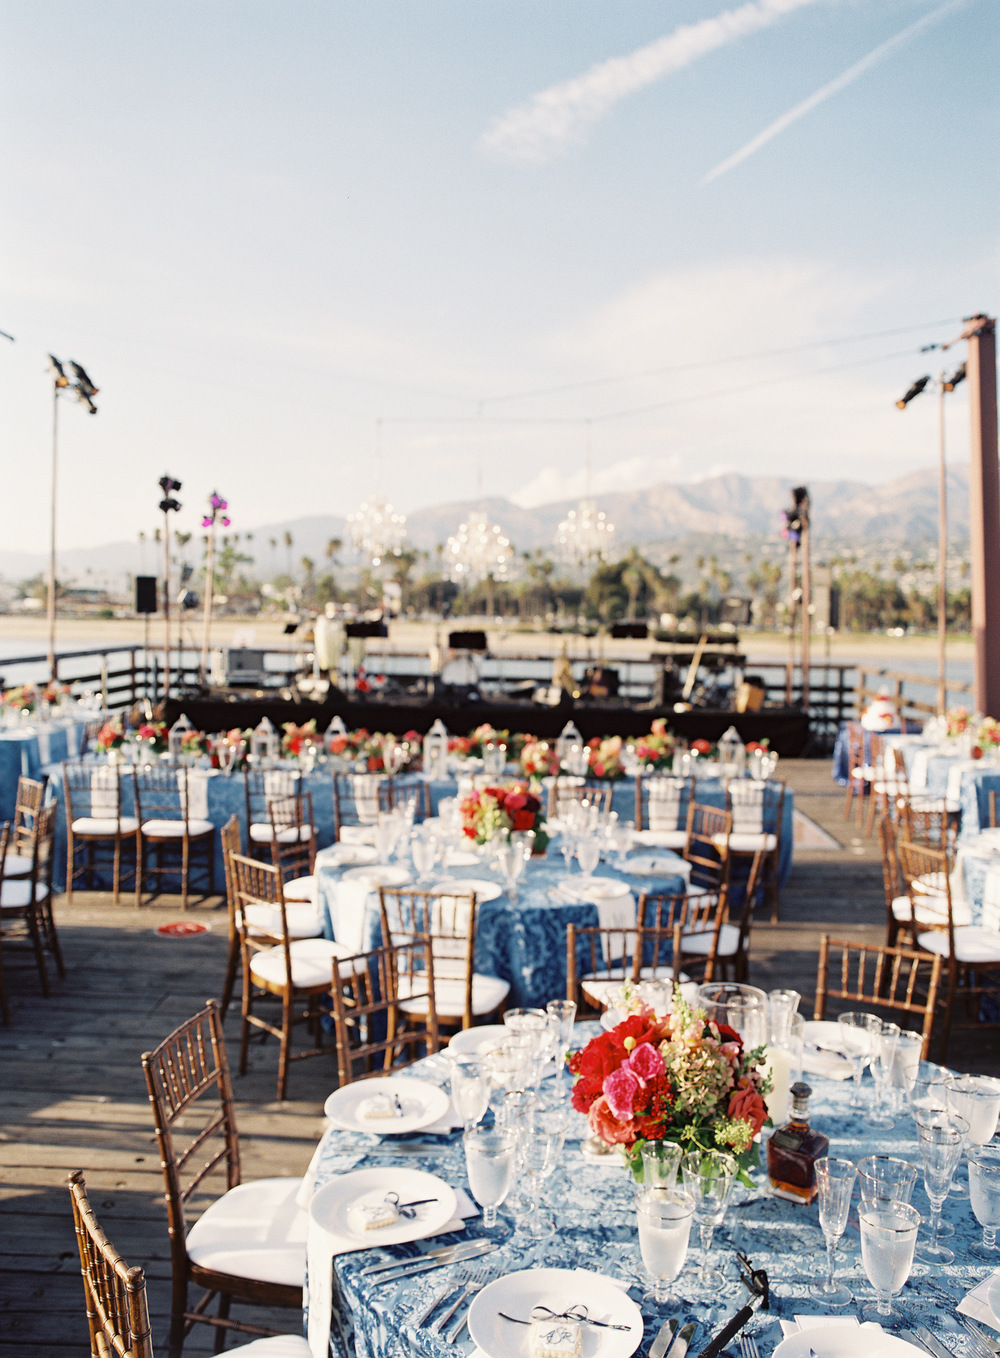 magnoliaeventdesign.com | Santa Barbara Museum of Natural History Sea Center Wedding Photographed by Linda Chaja | Magnolia Event Design